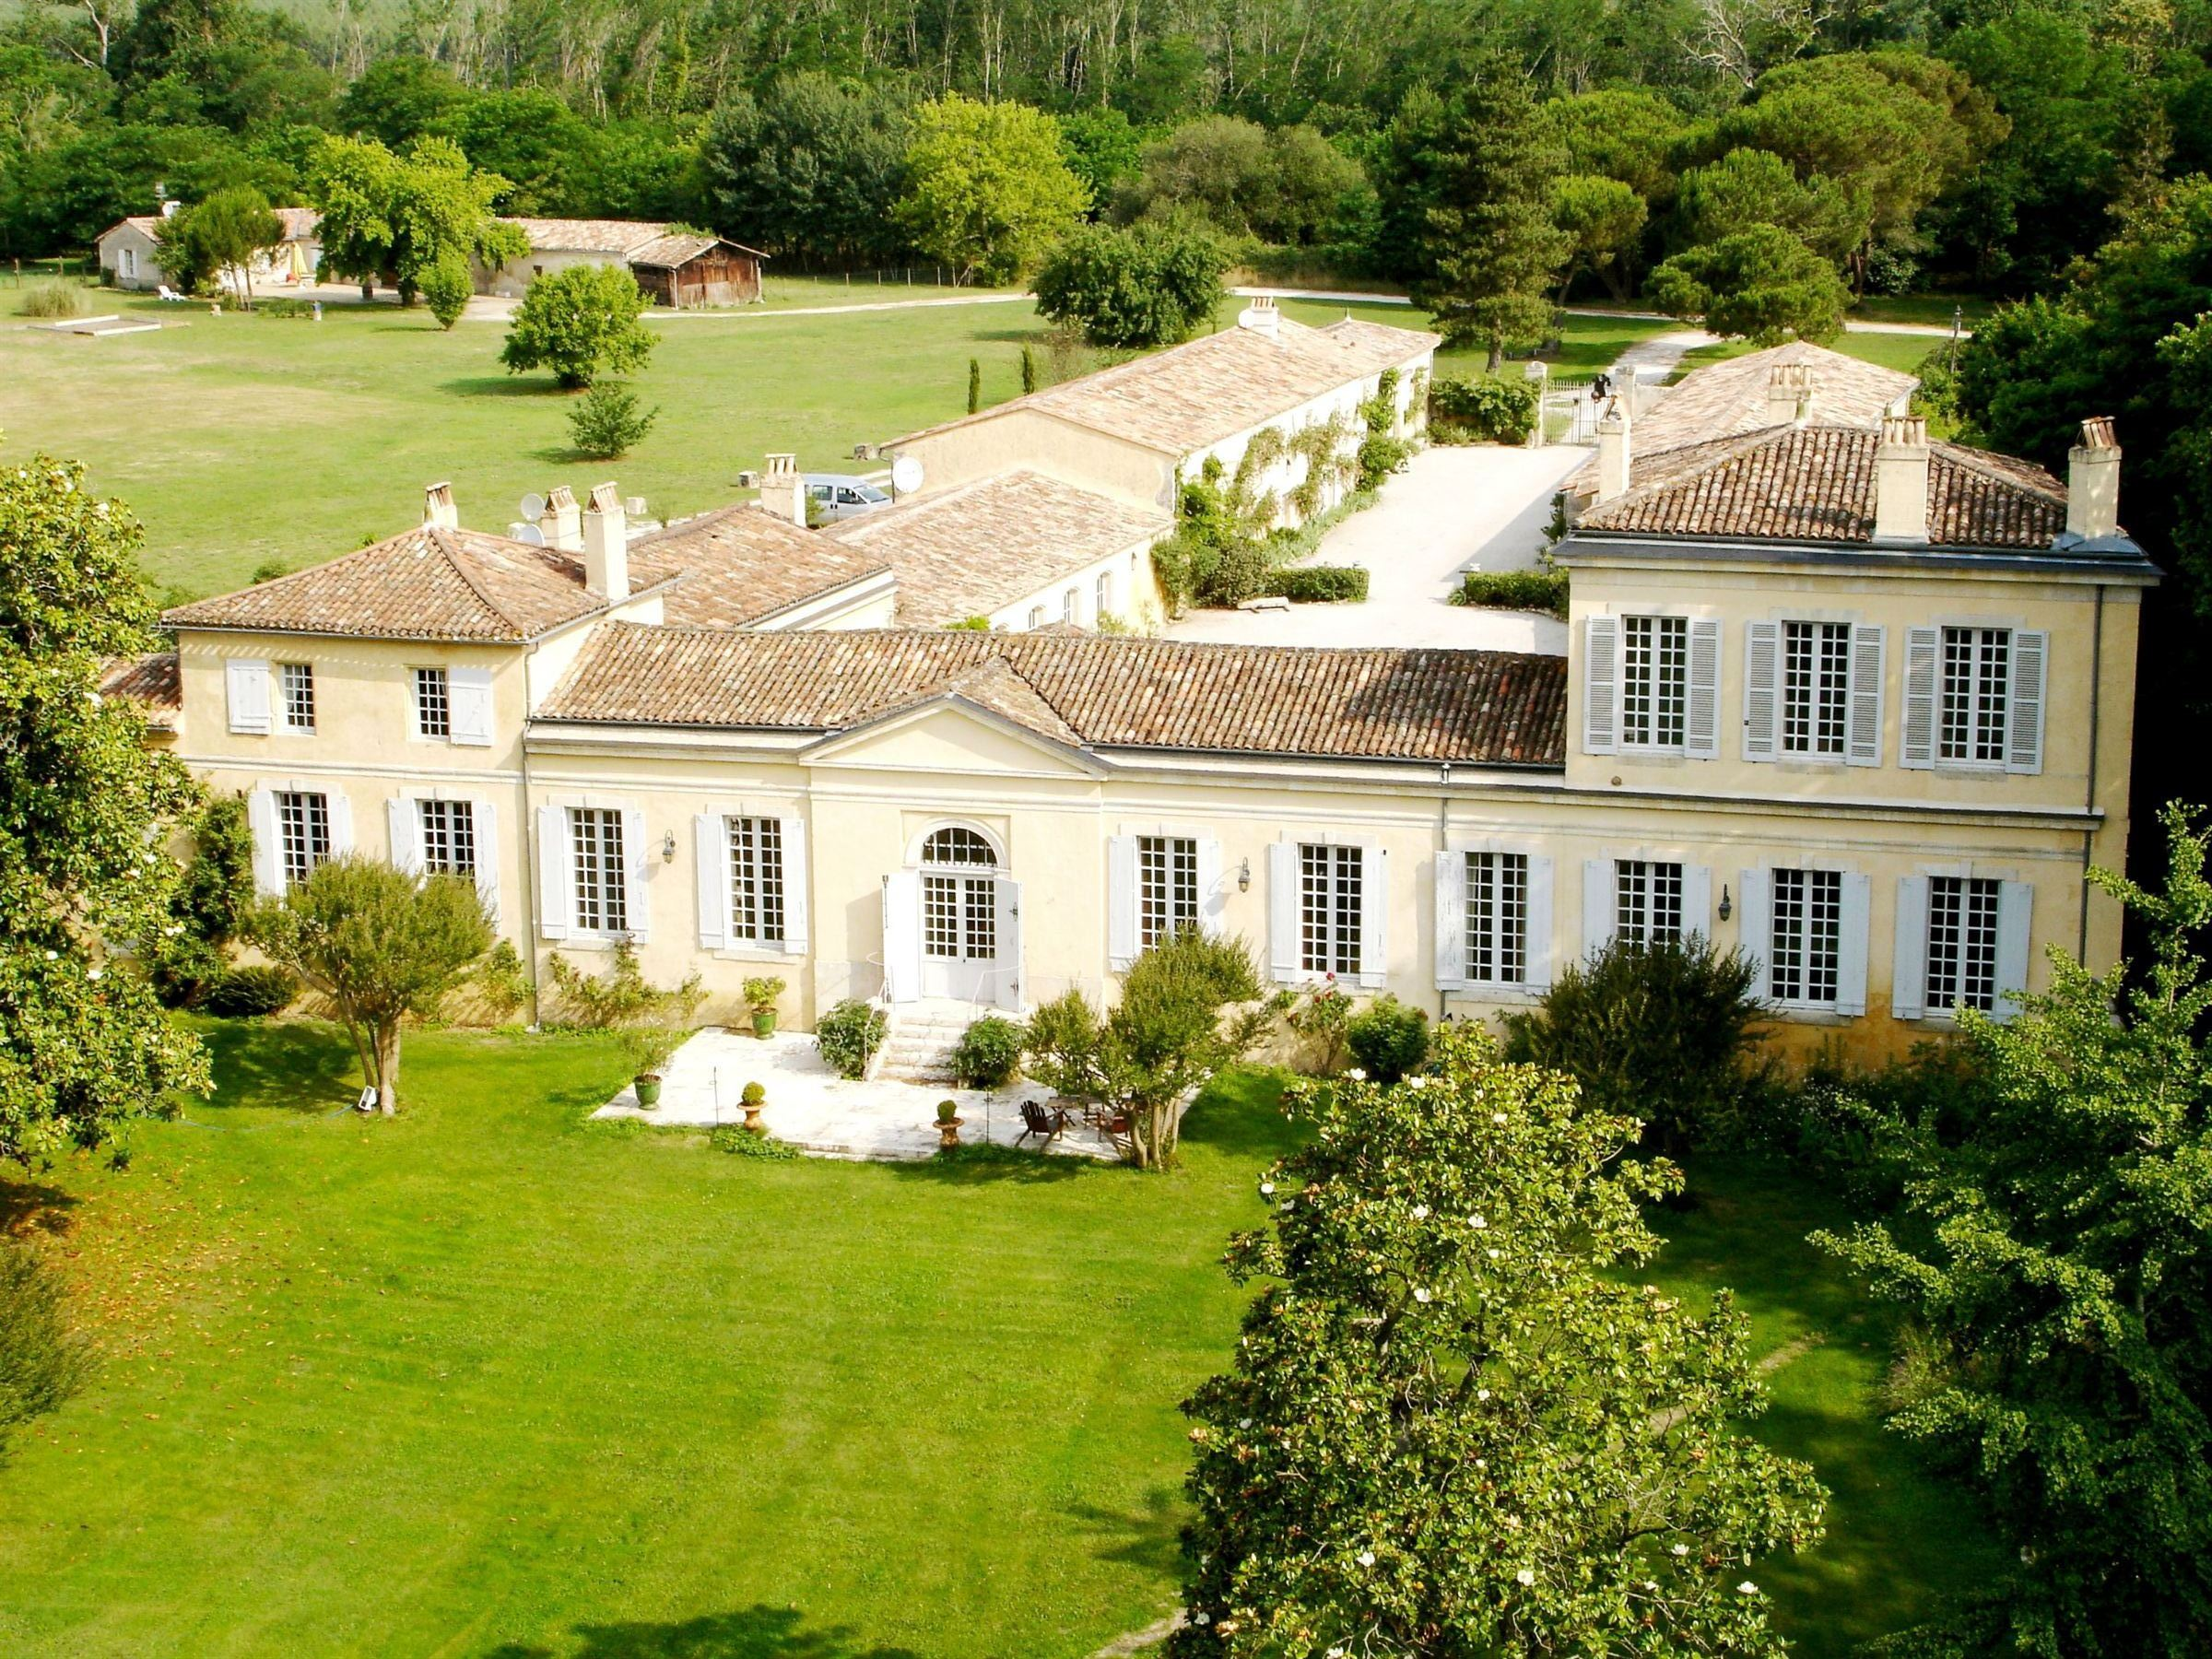 Moradia para Venda às STUNNING ESTATE - 10KM FROM DOWNTOWN BORDEAUX- EASY ACCESS TO THE AIRPORT Bordeaux, Aquitaine, 33000 França